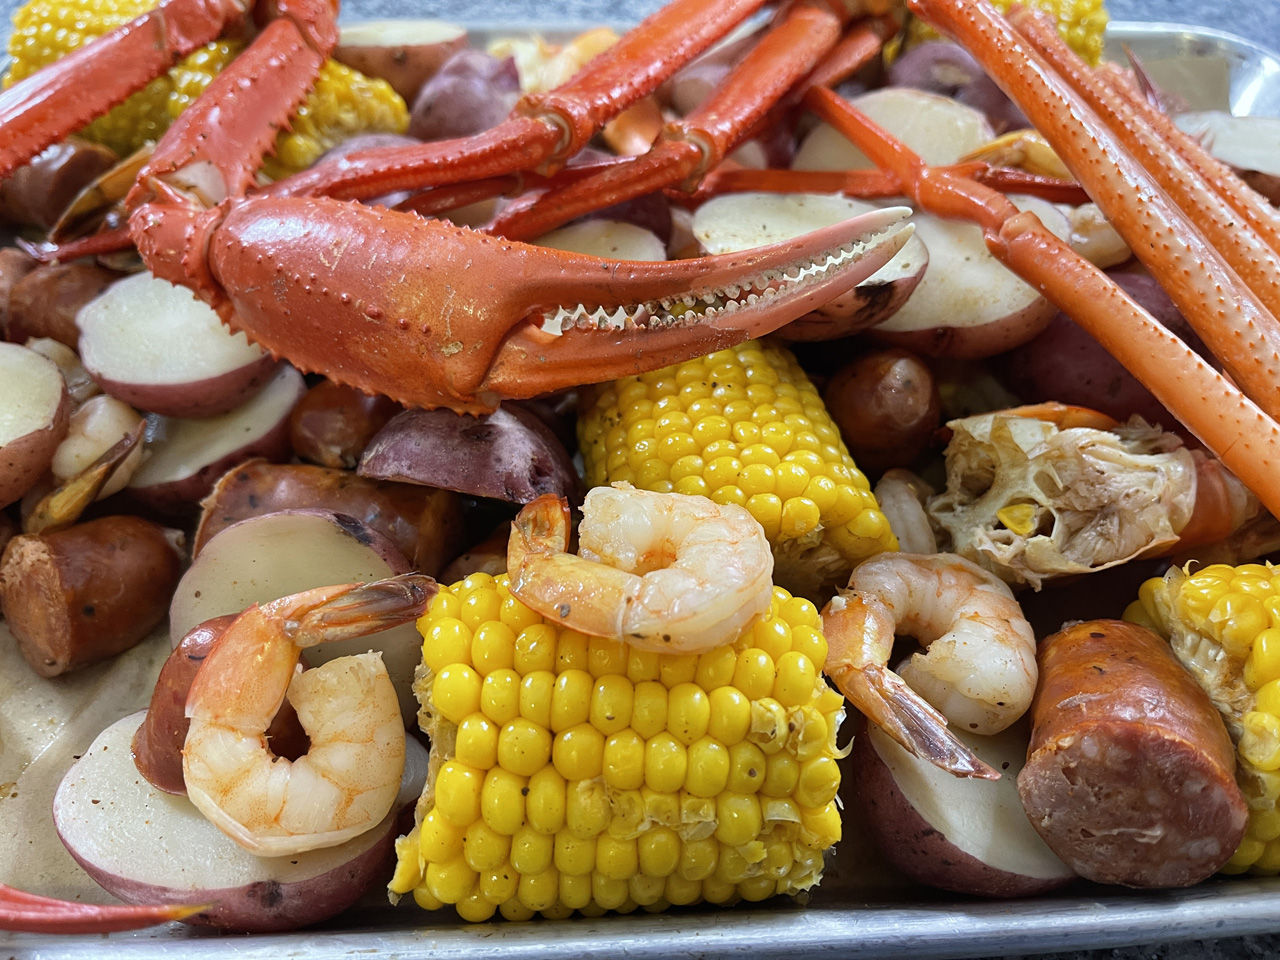 Close-Up Photo of the Crab Legs and Claw, Shrimp, Potatoes, and Corn